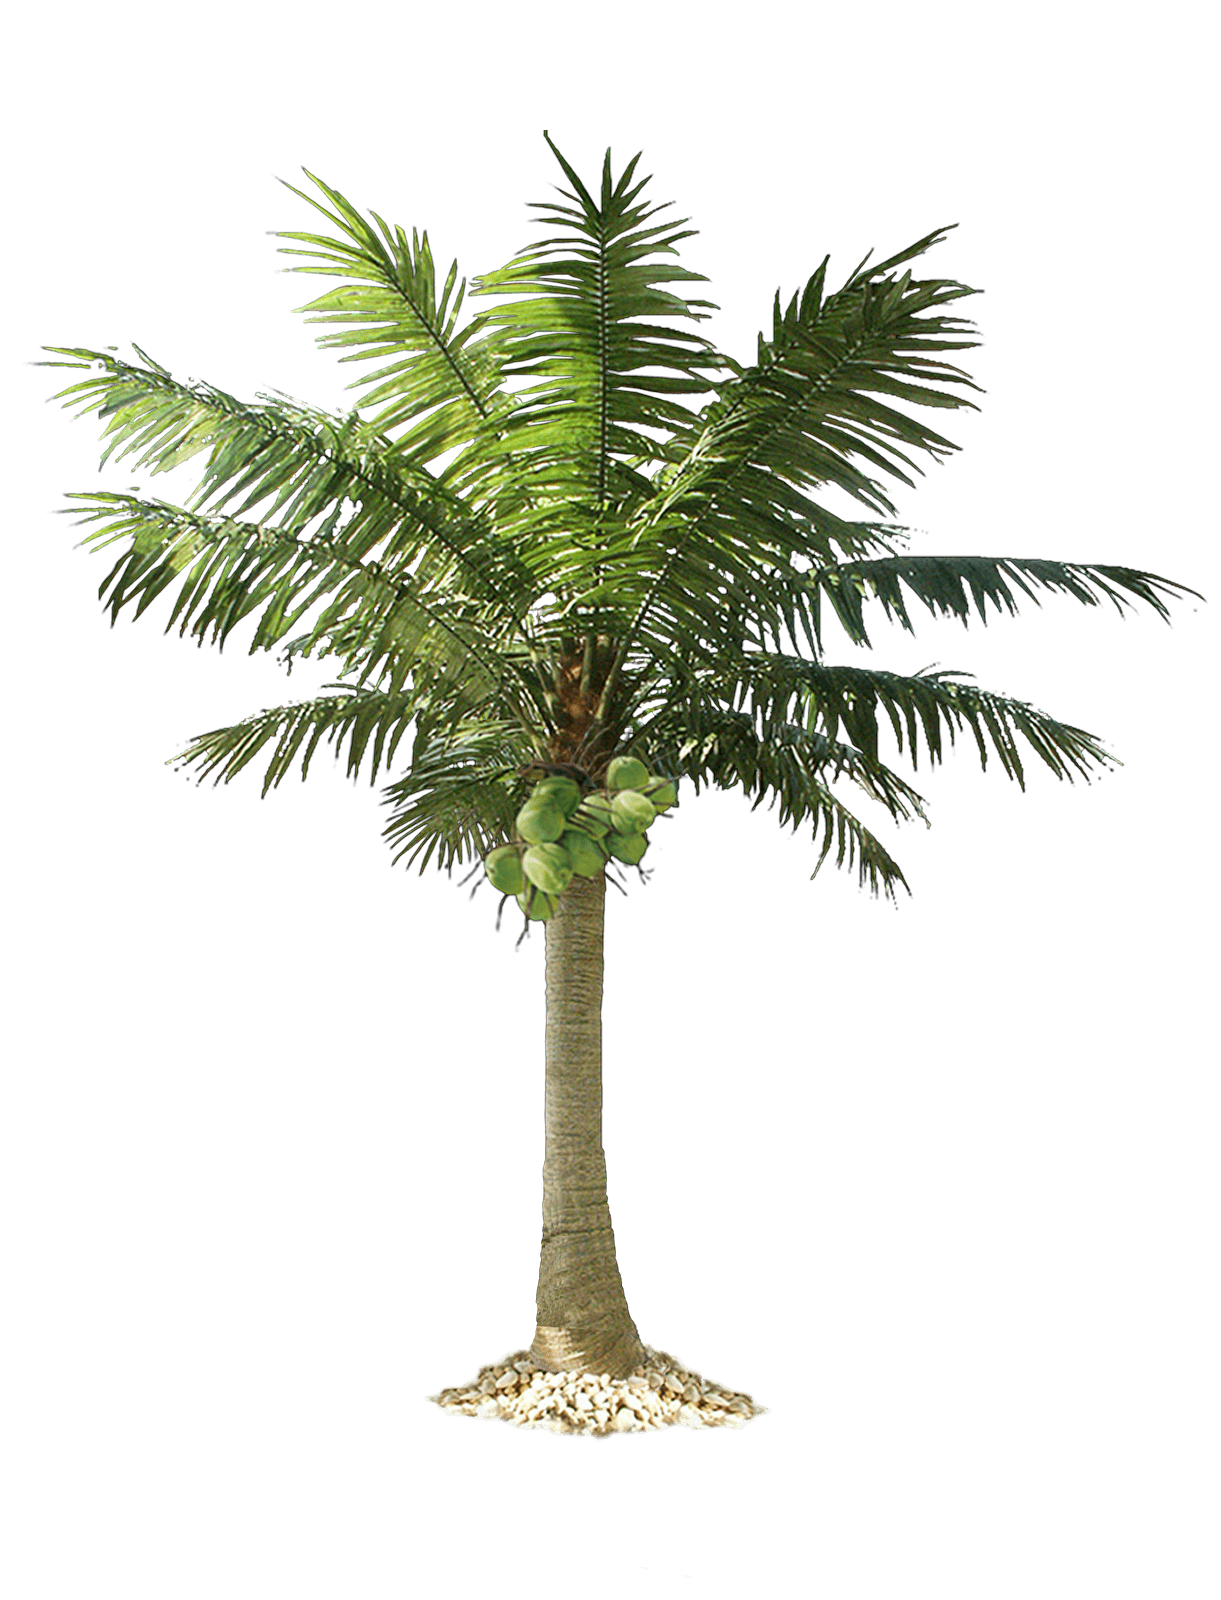 Tropical palm tree png. Transparent images pluspng image